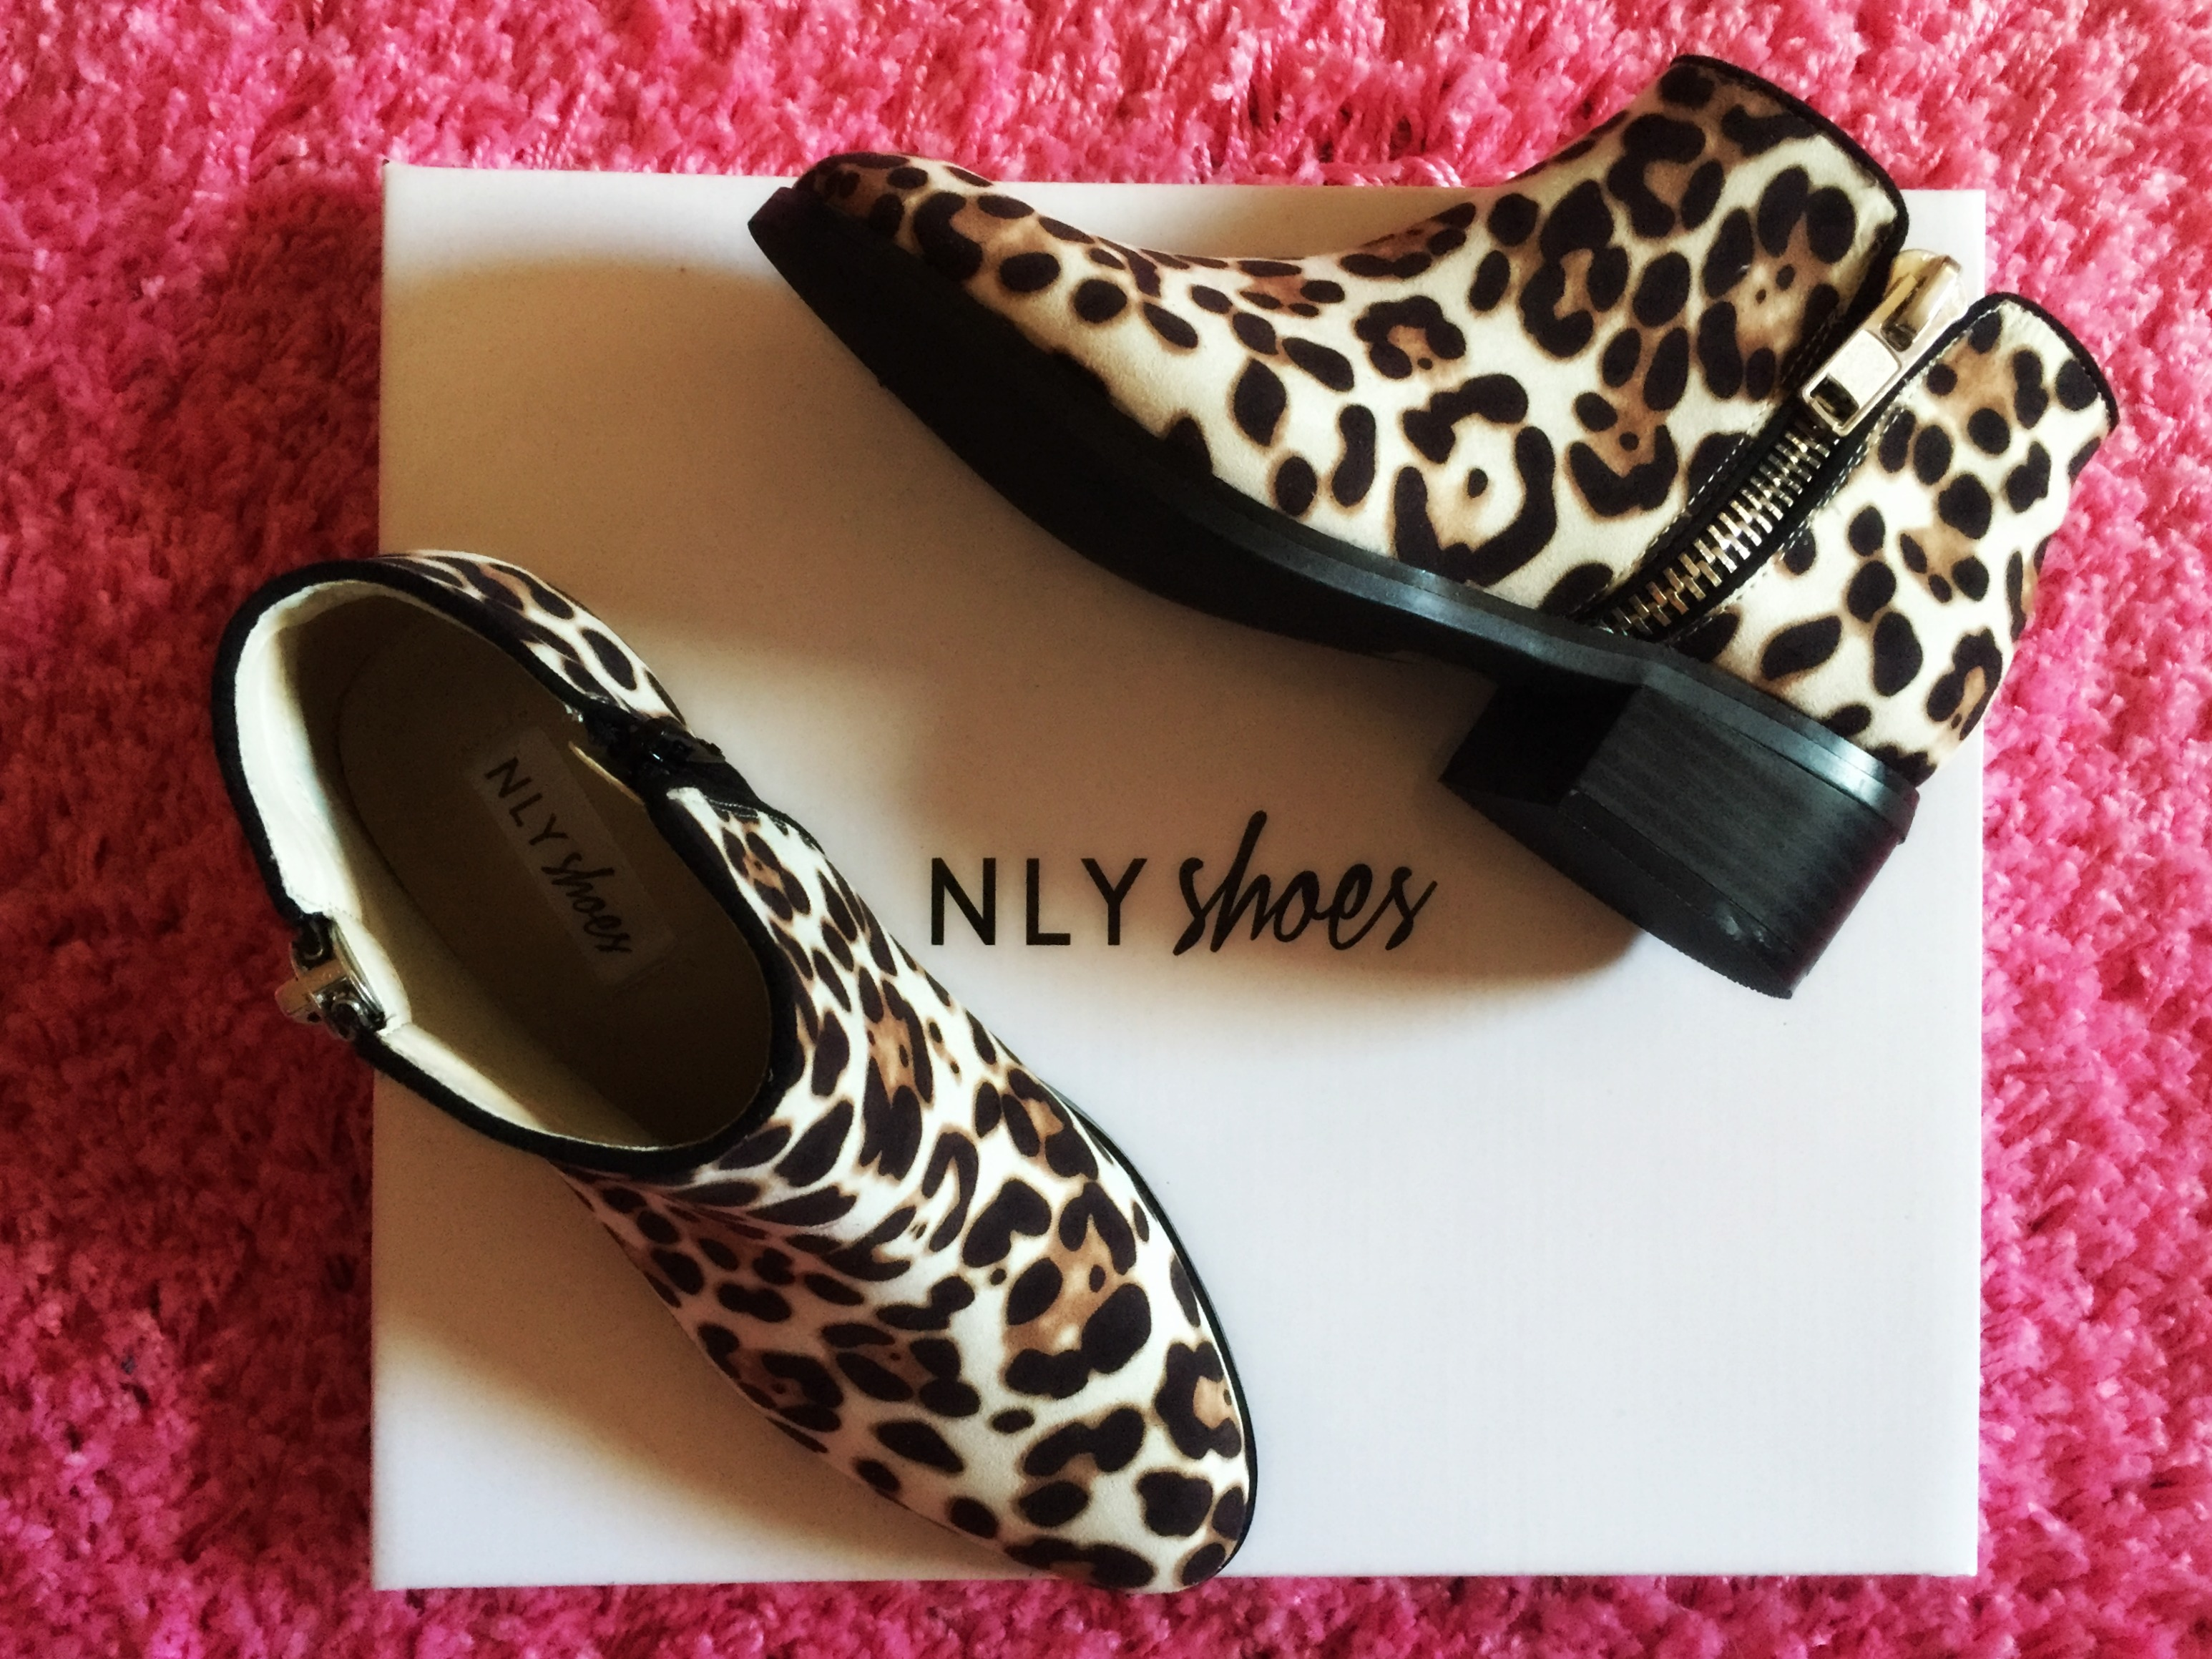 new-in-fall-nly-shoes-6